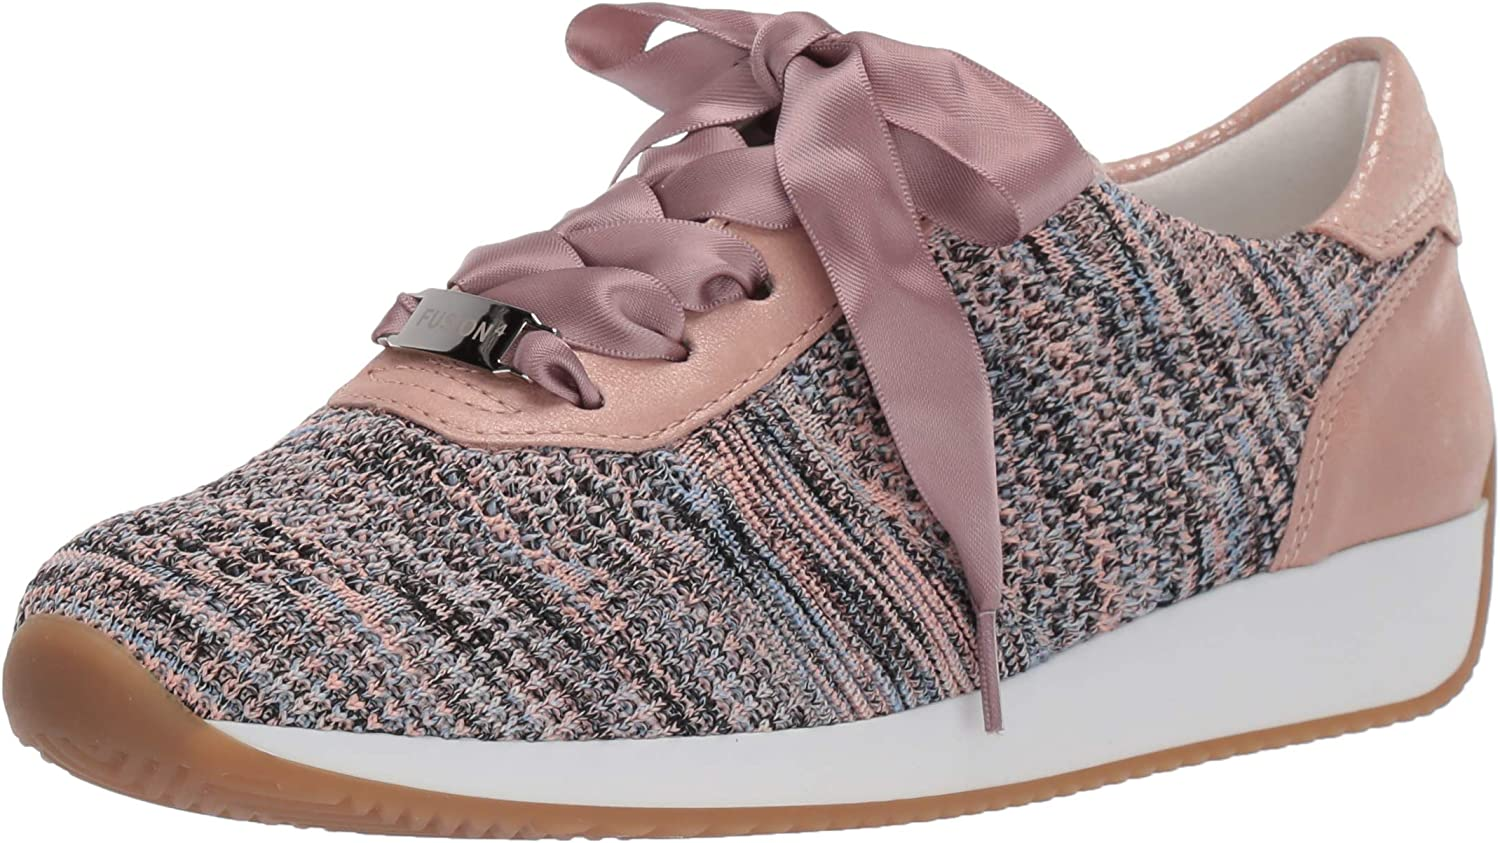 ARA Women's Lilly Sneaker Popular product Max 45% OFF